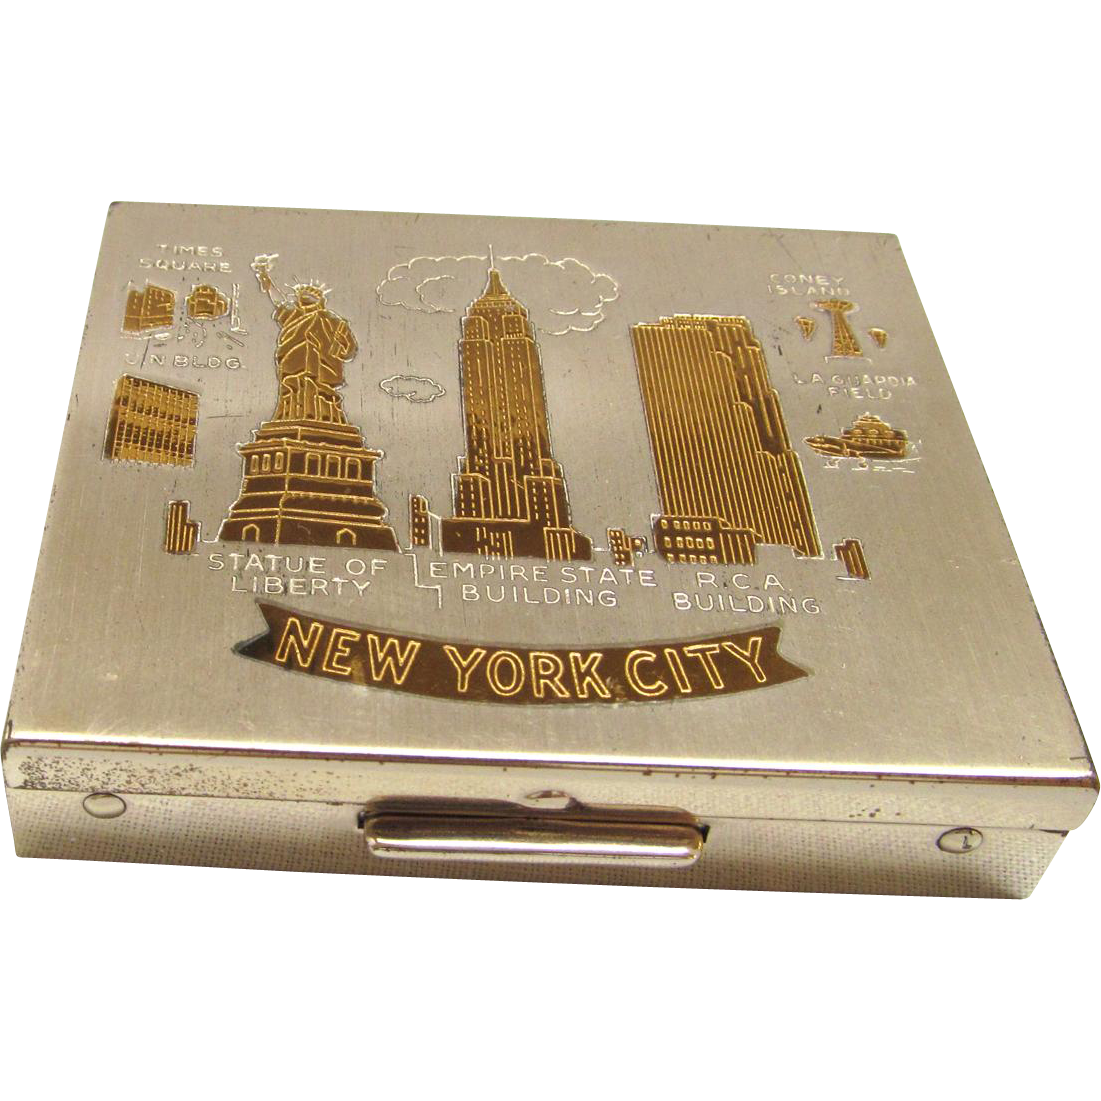 New York Souvenir Compact 1950s Empire State and RCA Building